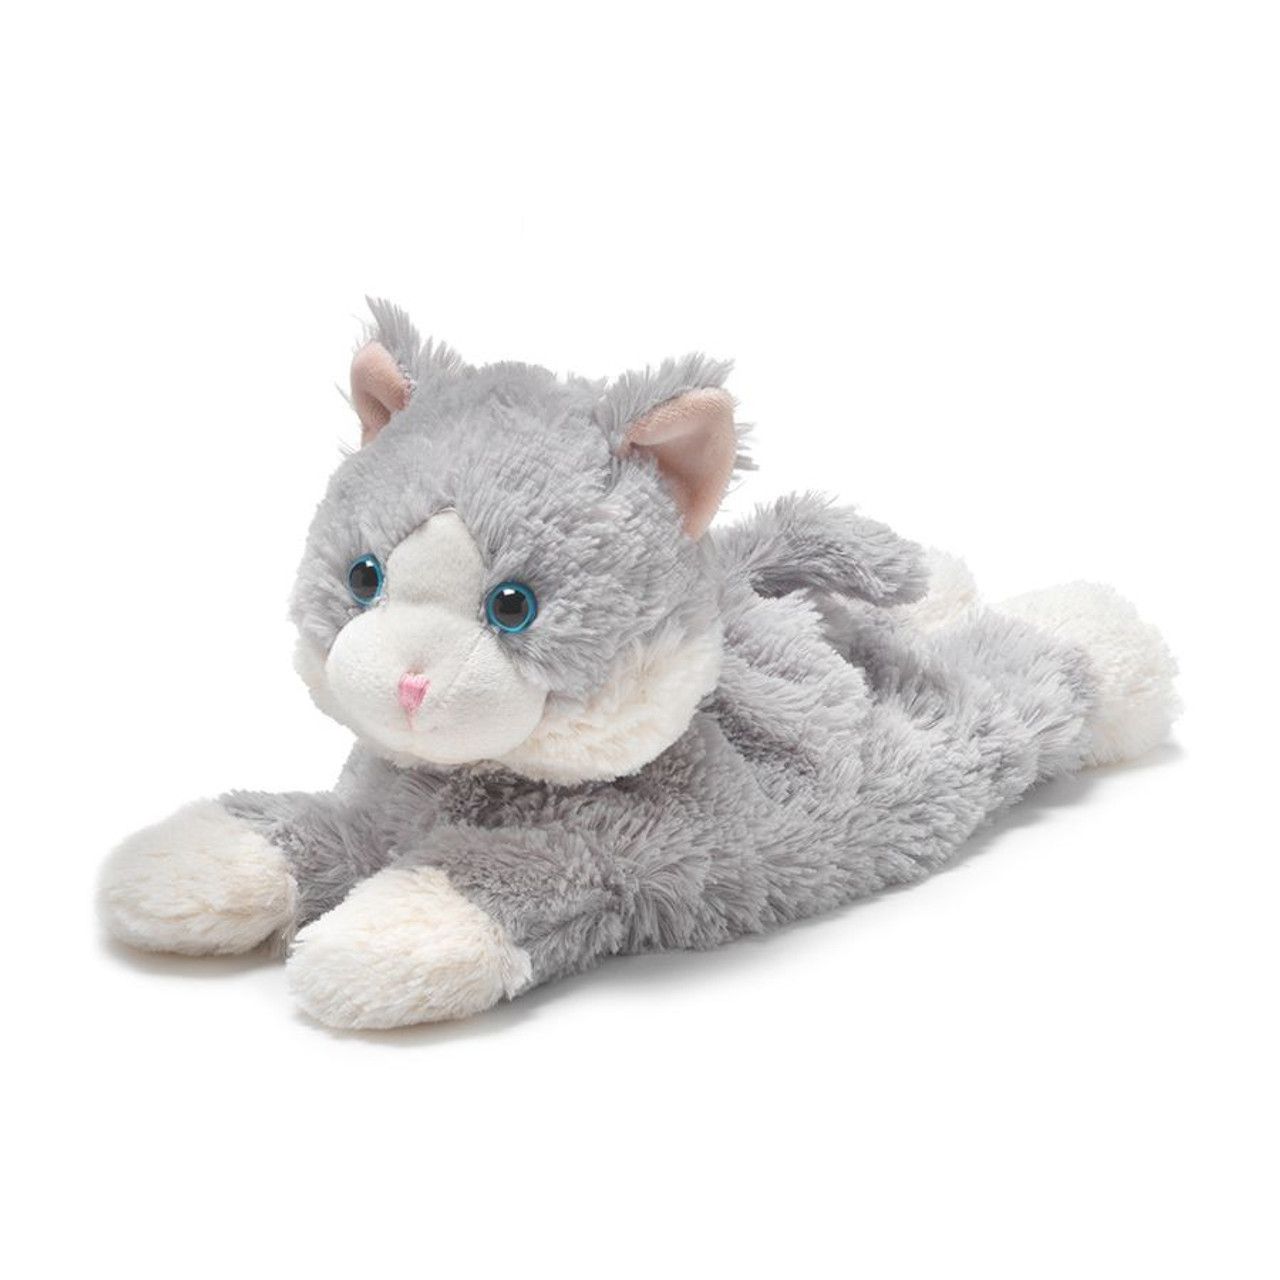 "All age groups can have hours of fun using their Warmies® Cozy Plush Laying Down Grey Cat, knowing that they can be warm all night long.   The 13"" Laying Down Grey Cat is fully microwavable yet entirely safe to hold tight after taking a bath, putting on PJs, and heading up the stairs to bed."